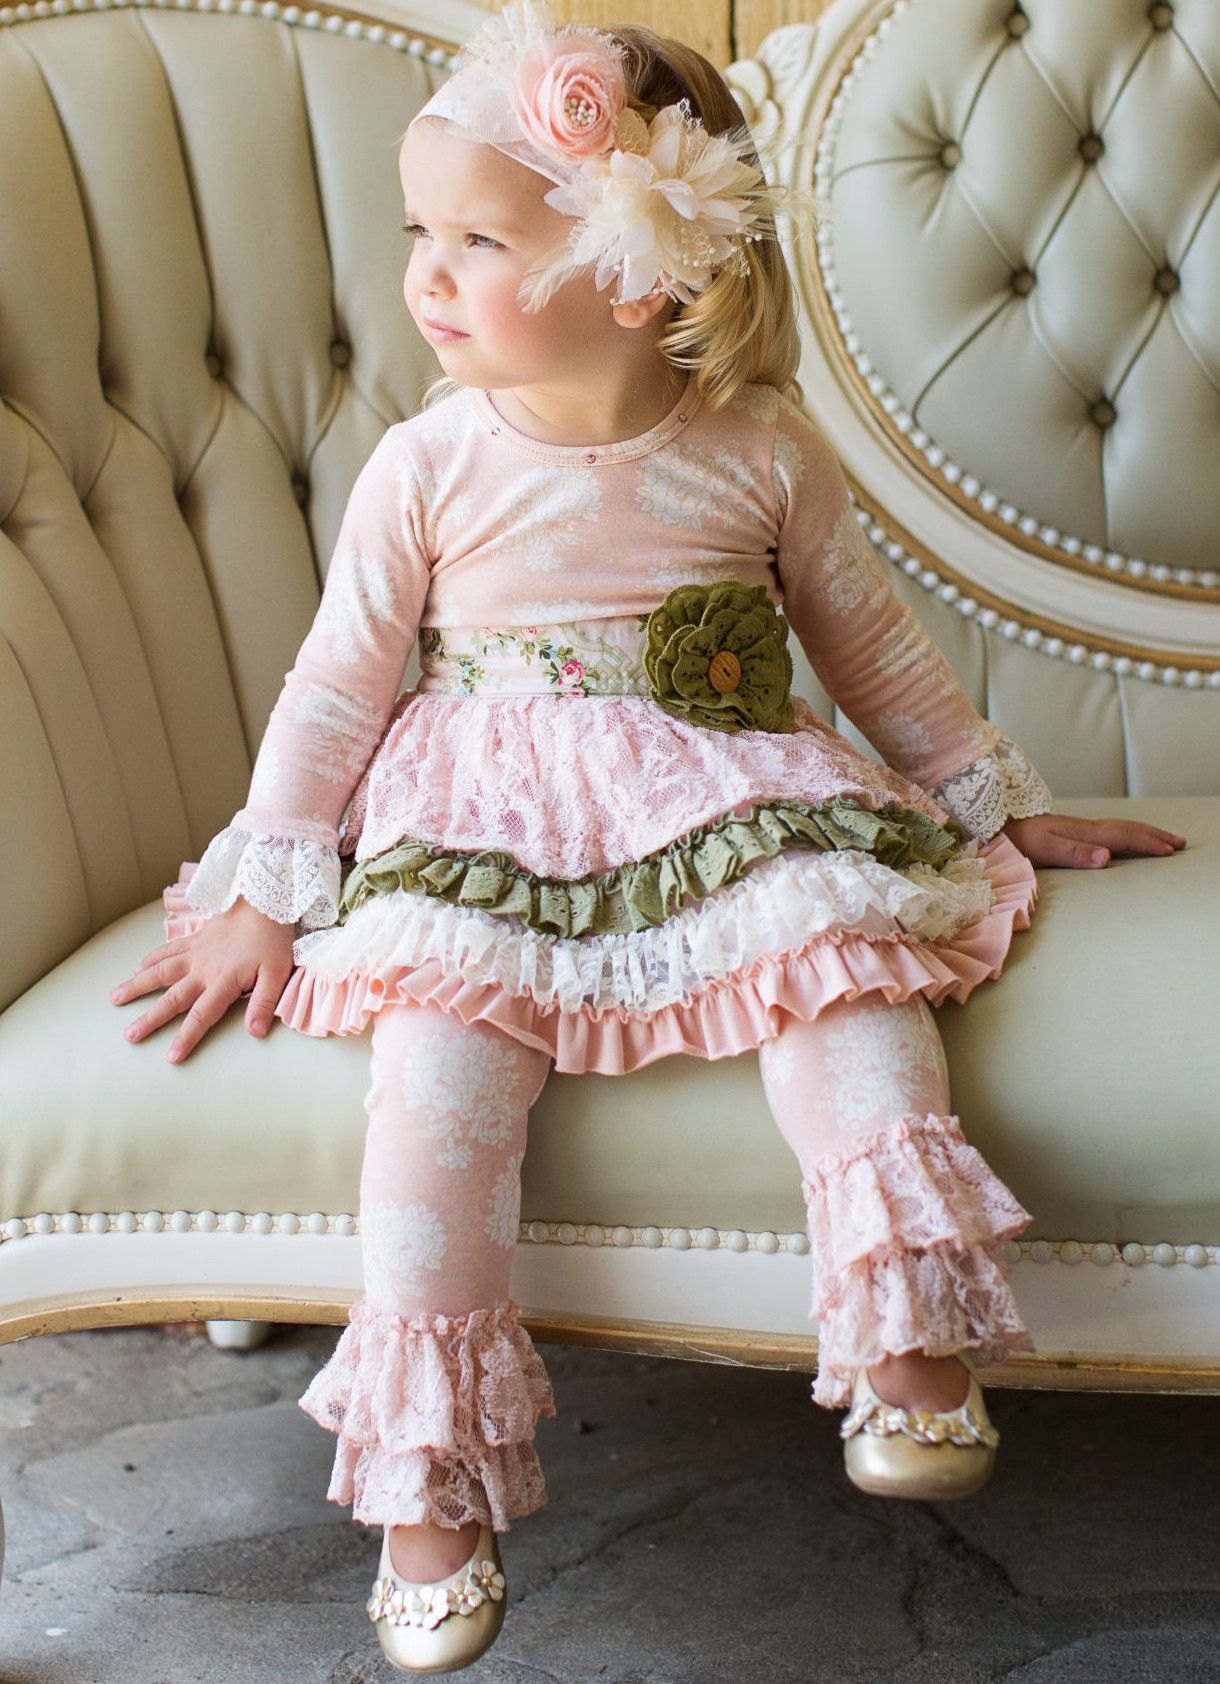 The Giggle Moon Giggle Moon Tree of Life Tutu Dress with Lace